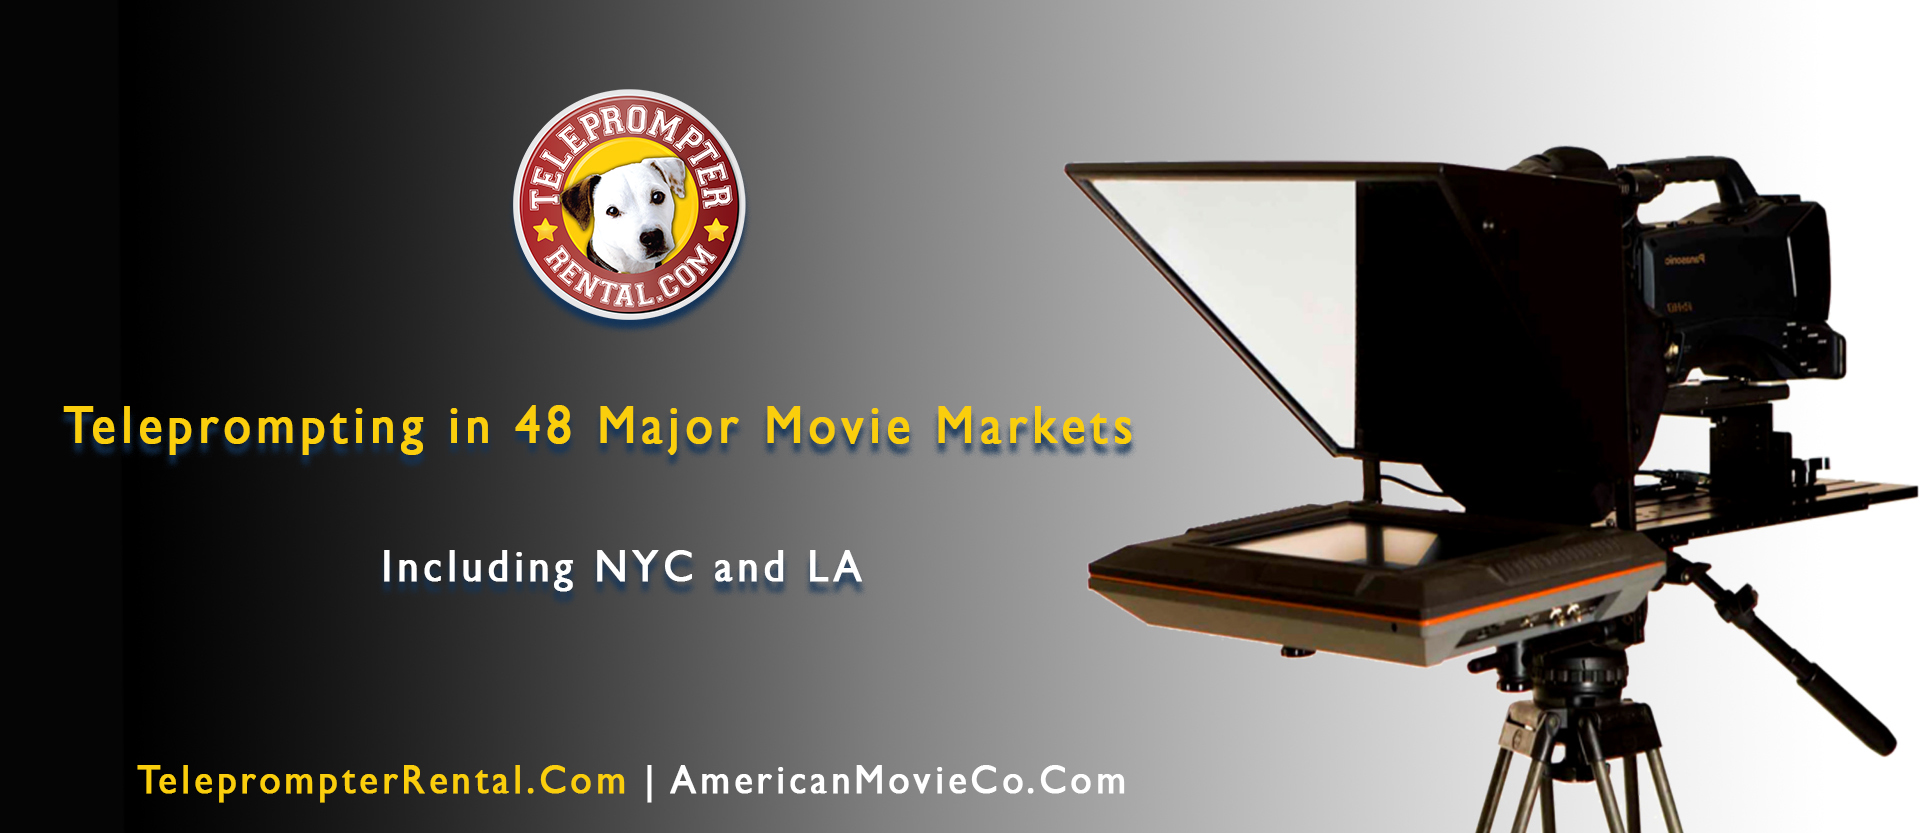 Teleprompting in 48 Major Movie Markets